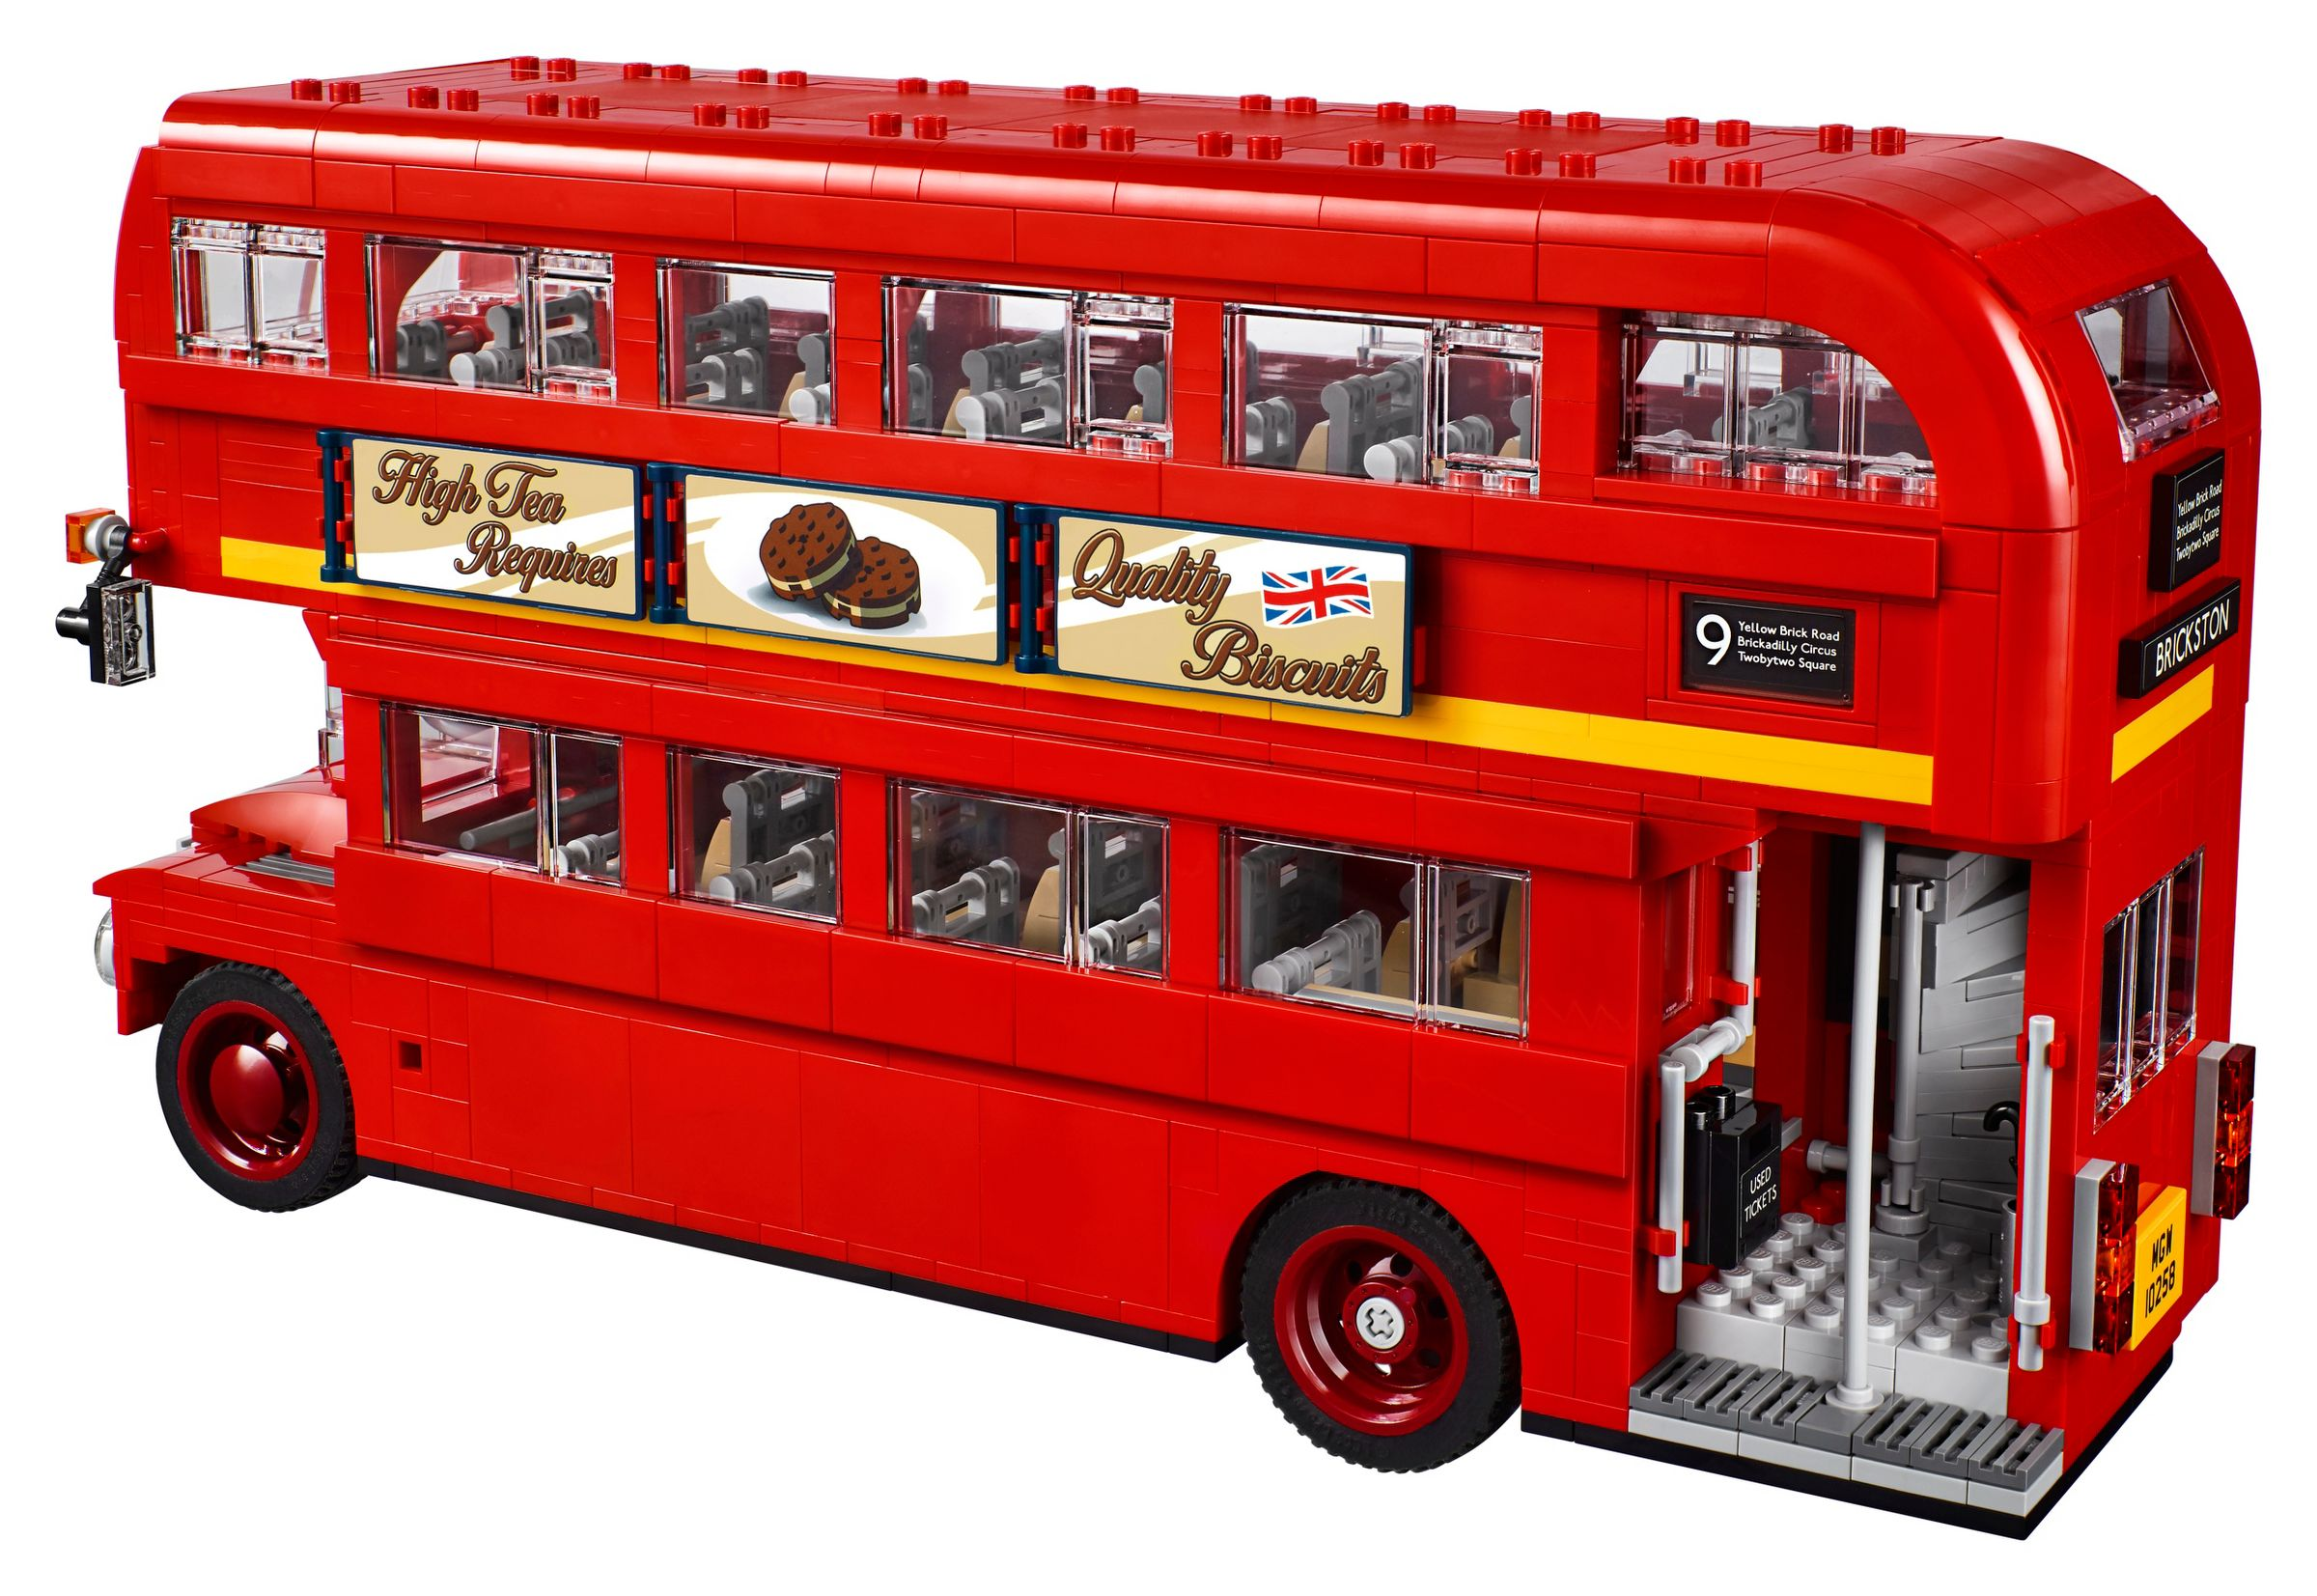 LEGO Advanced Models 10258 Doppeldecker Bus LEGO_10258_alt3.jpg